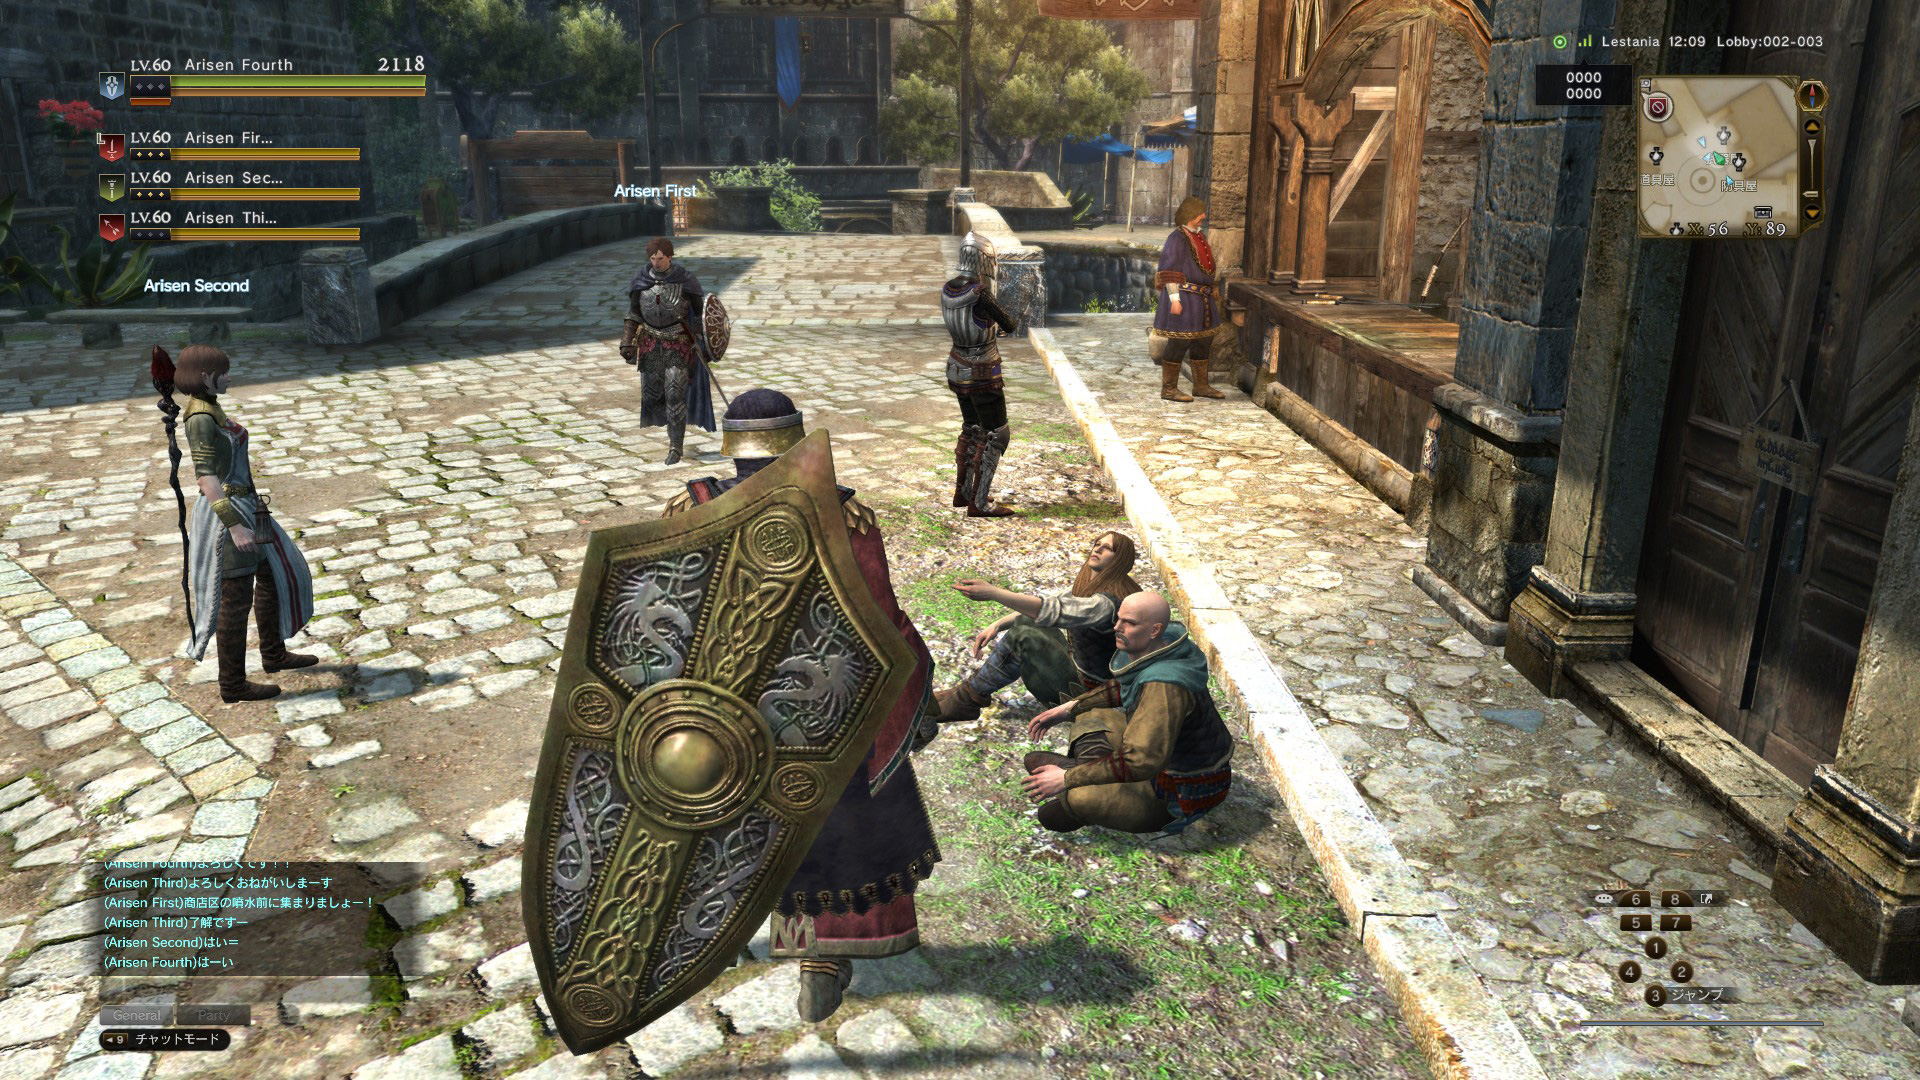 Dragons-Dogma-Online-Town-Lobby-Screenshot-2